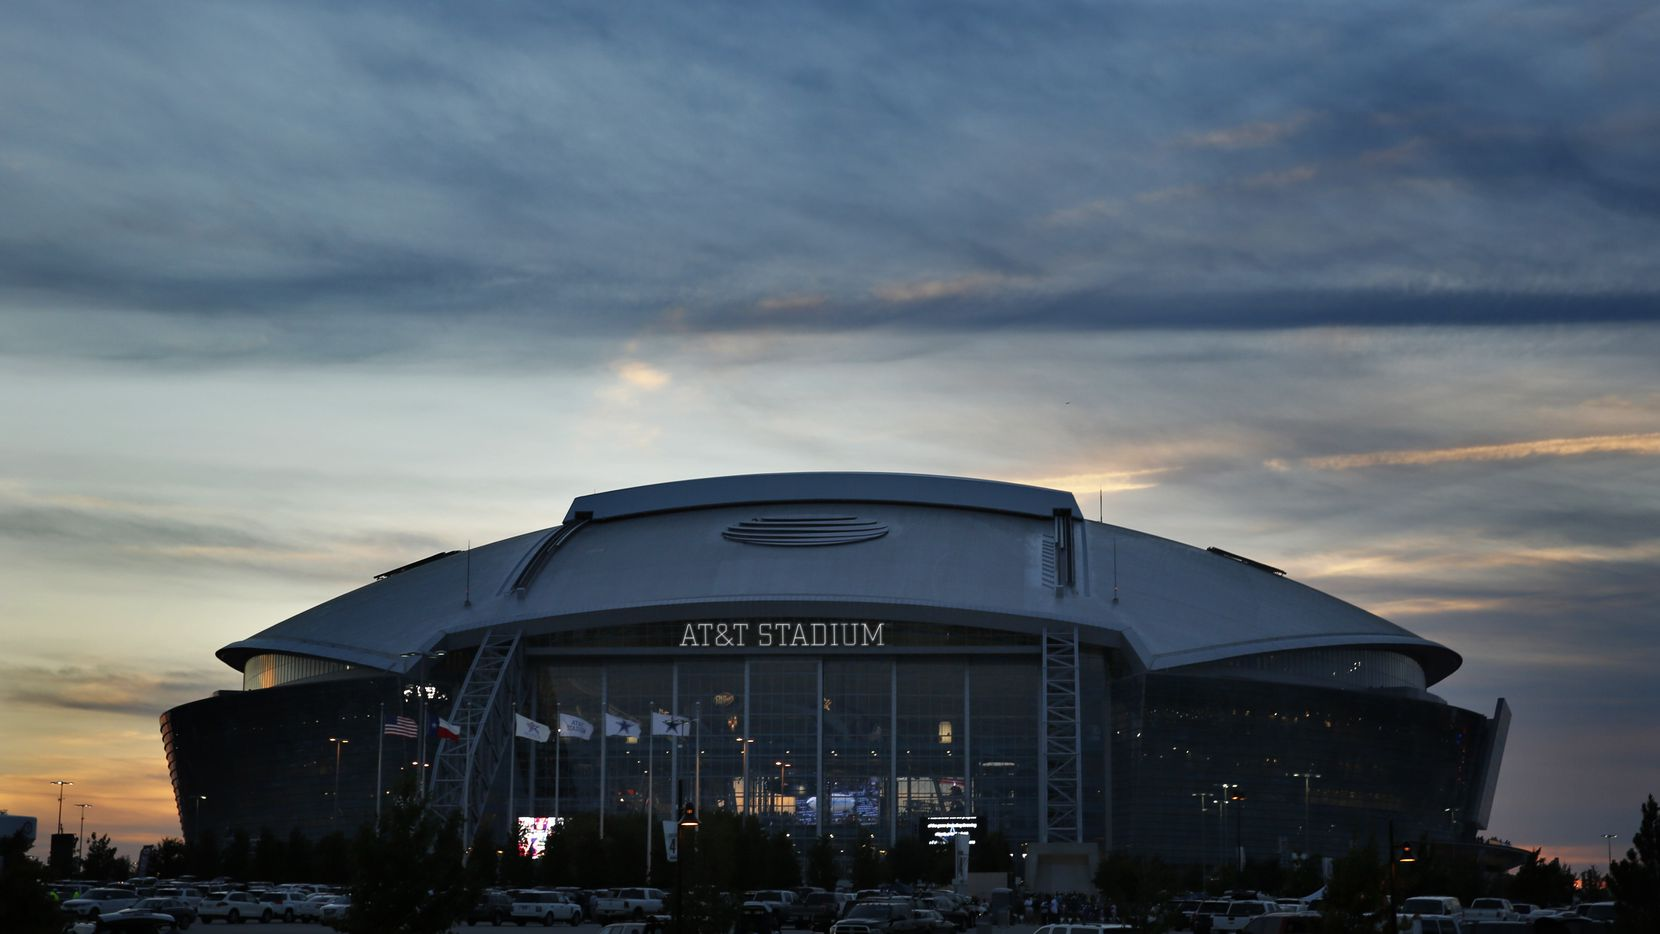 AT&T Stadium is seen at sunset before the Dallas Cowboys Washington Redskins game, Monday, October 27, 2014. (Tom Fox/The Dallas Morning News)  exterior building mug overall architecture facade